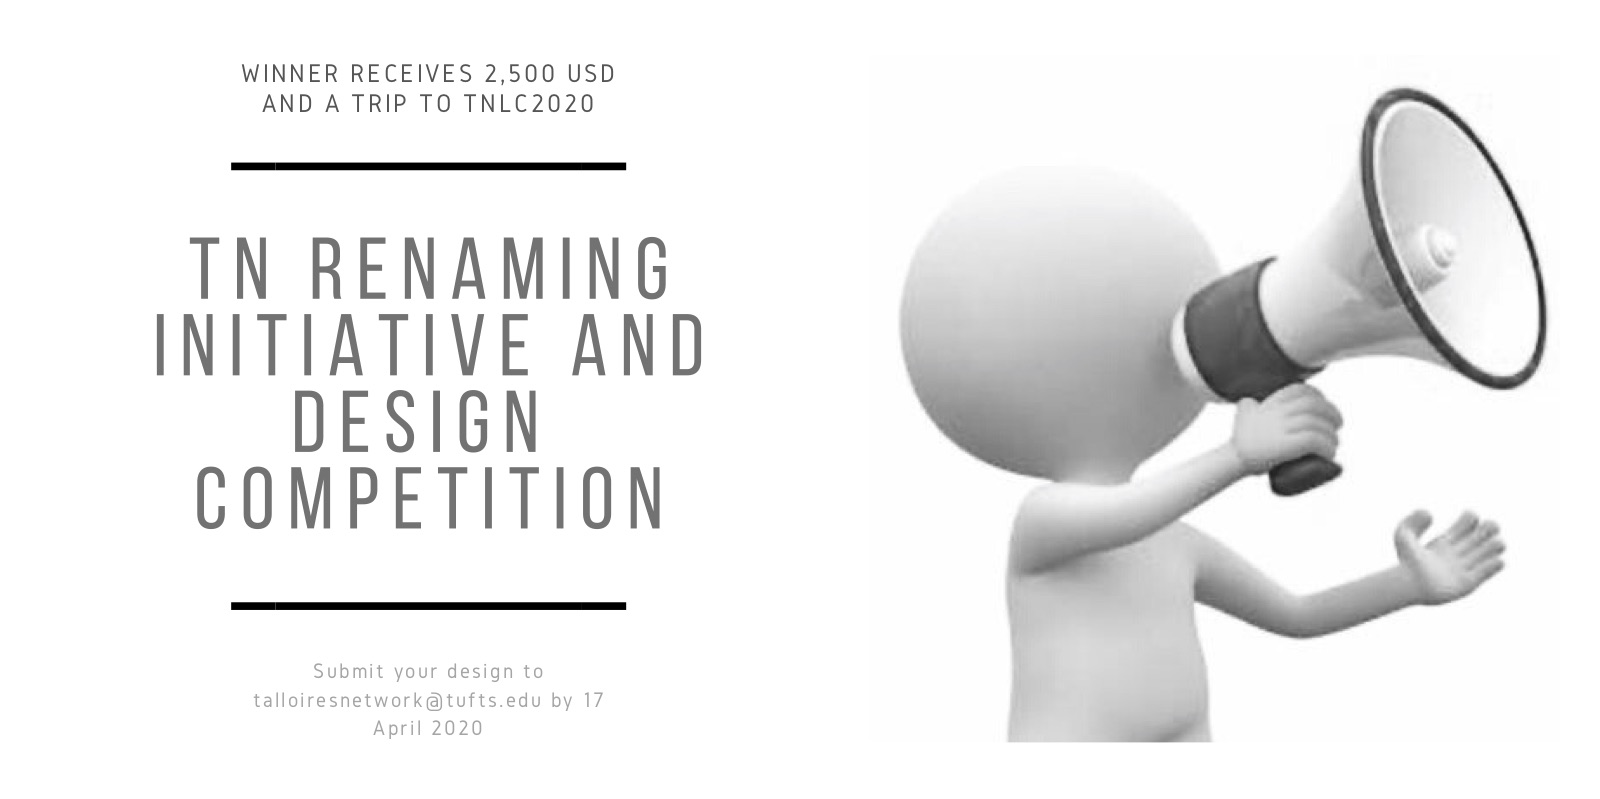 Talloires Network Renaming Initiative Design Competition 2020